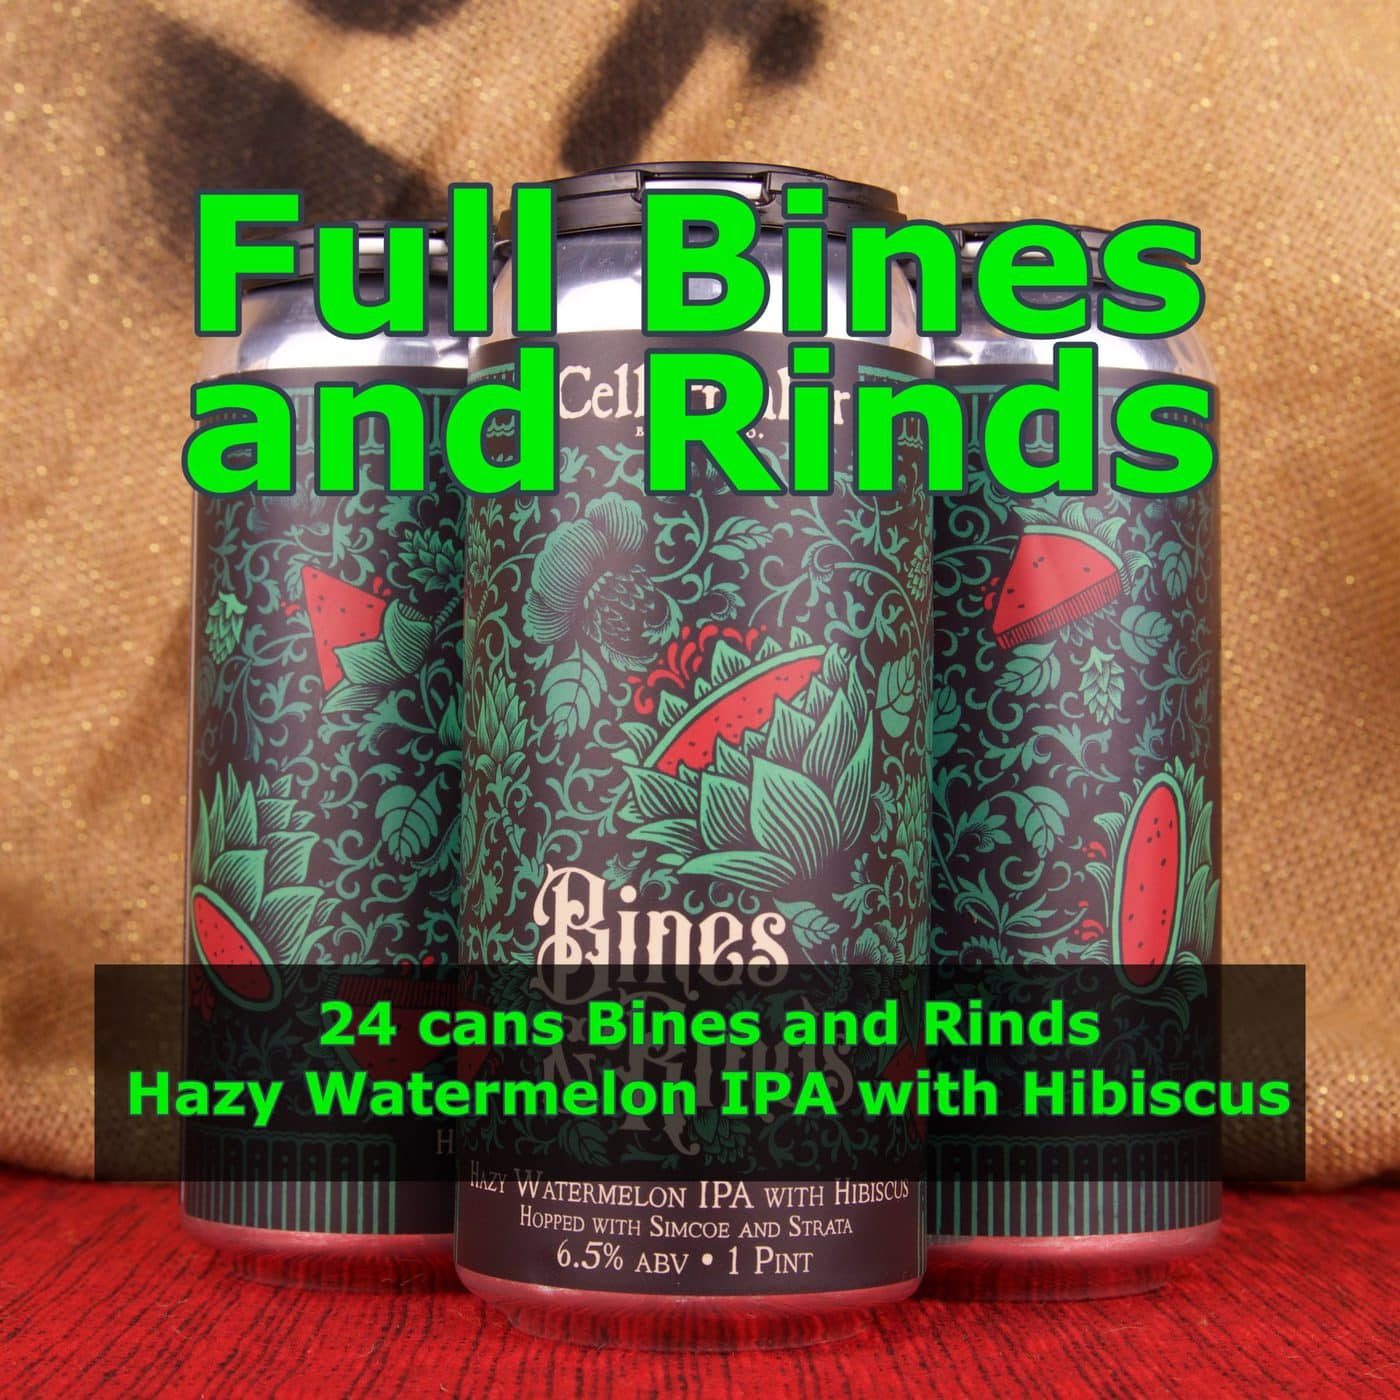 FULL CASE 24 CANS Bines And Rinds IPA With Watermelon – Shipping Out Tuesday 6/15 For Next Day Delivery*